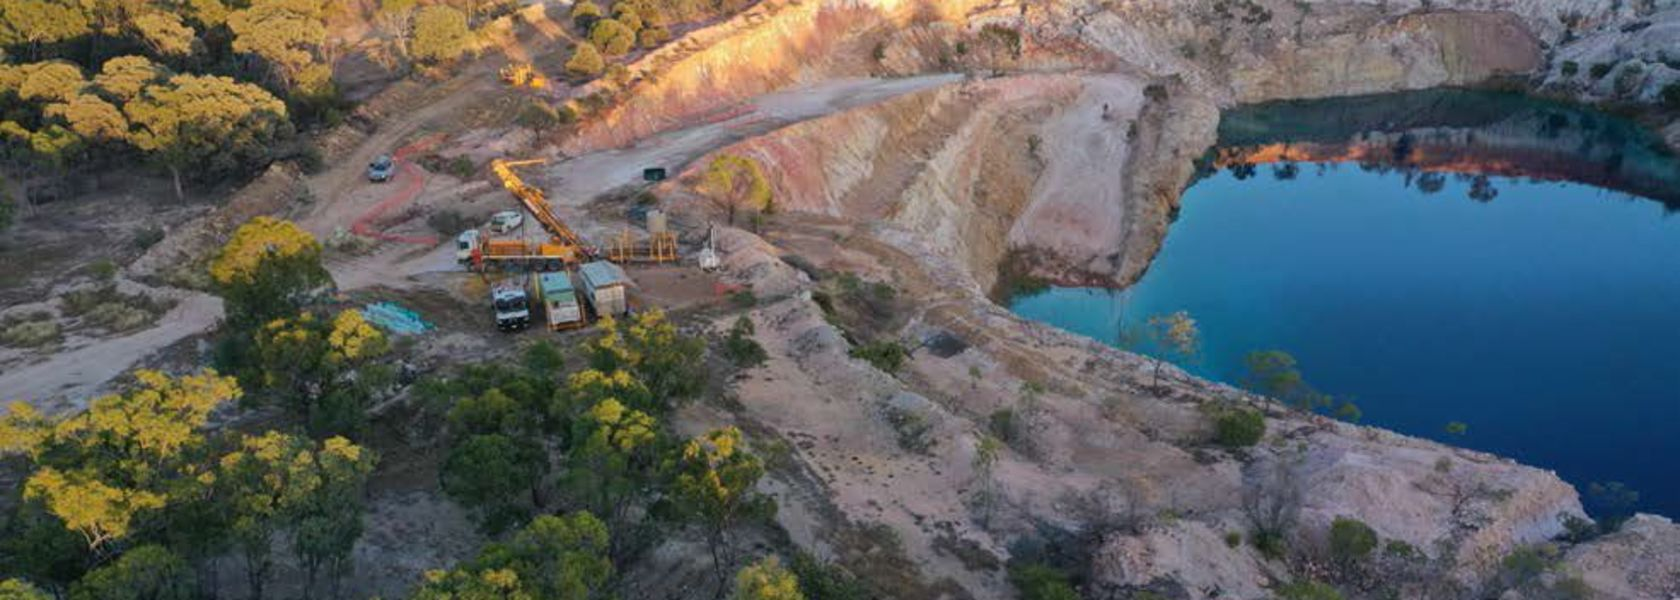 GBM picks up another gold project